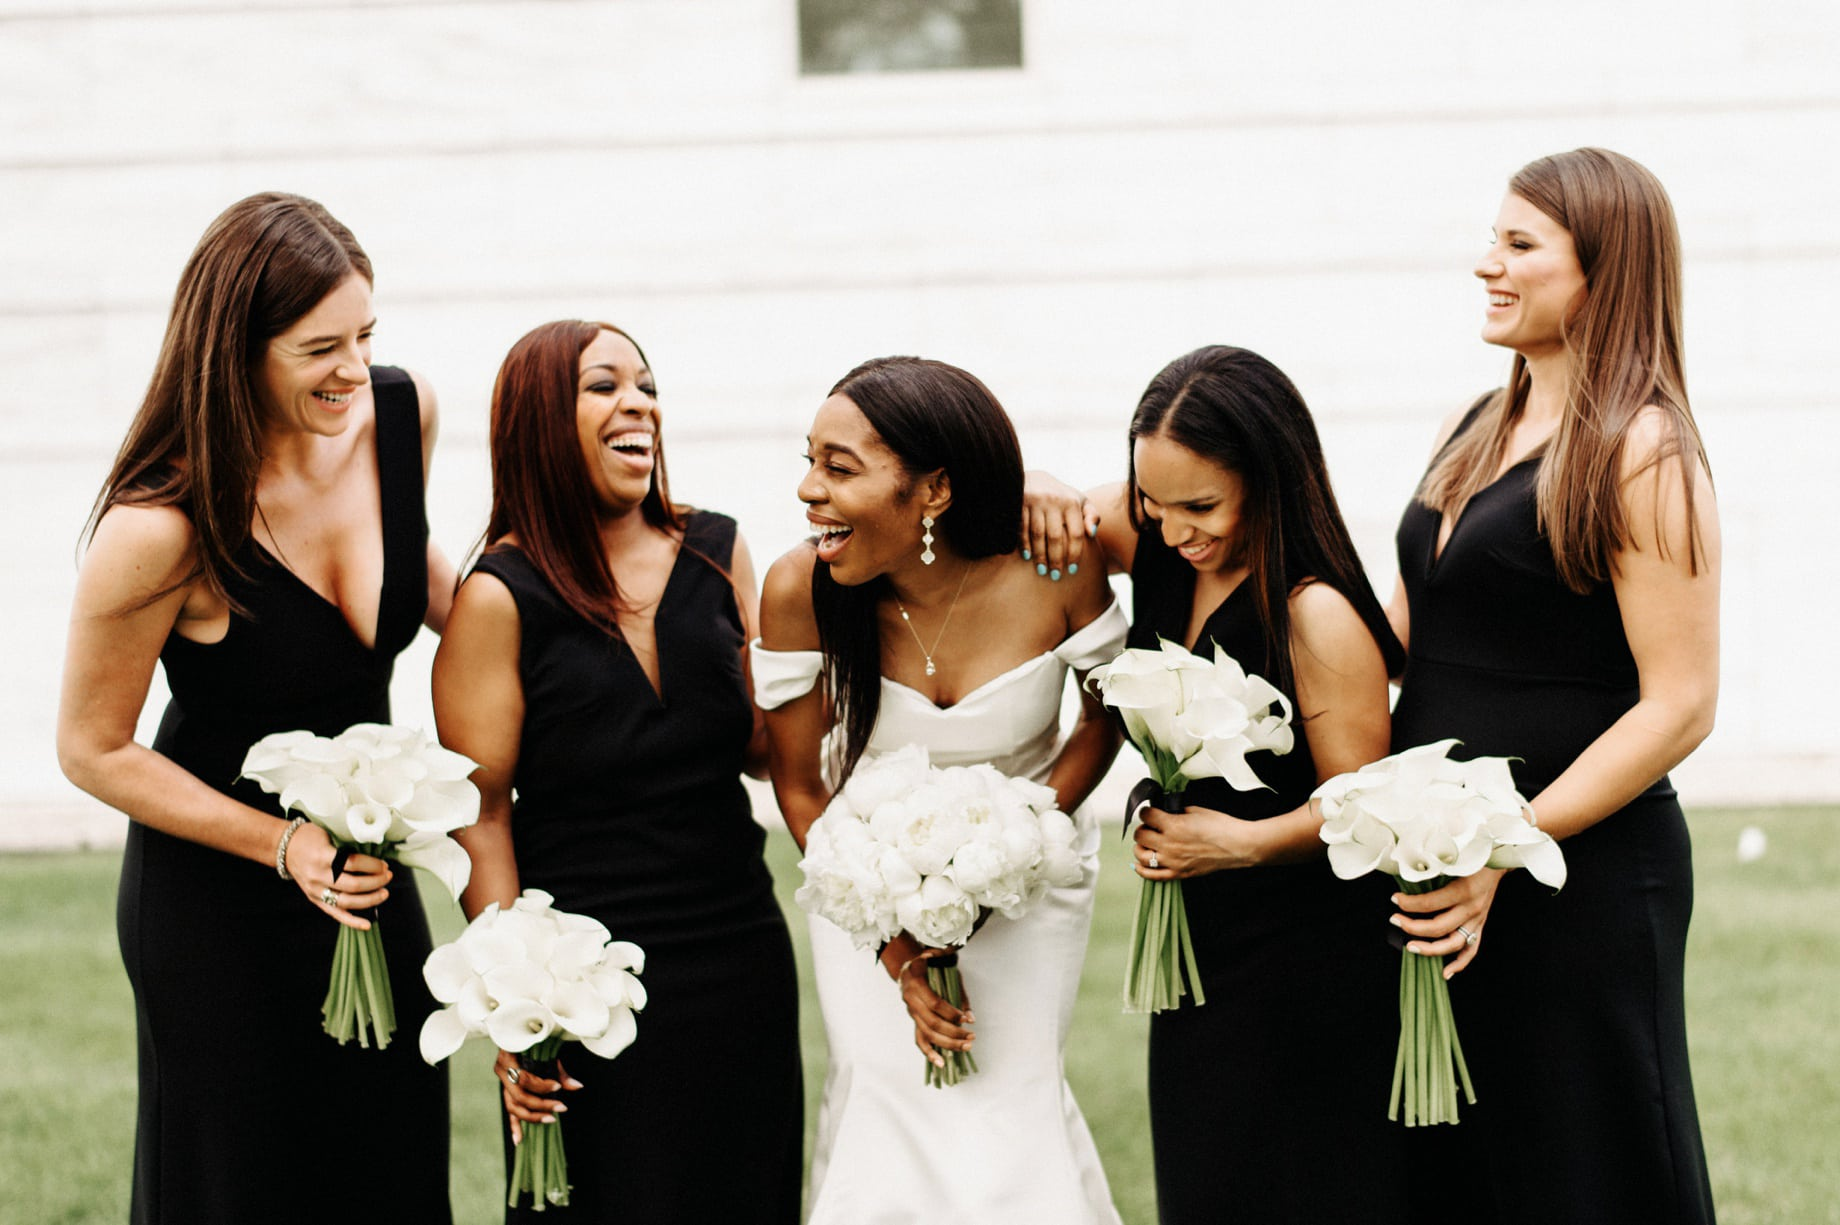 bride with bridesmaids in black gowns